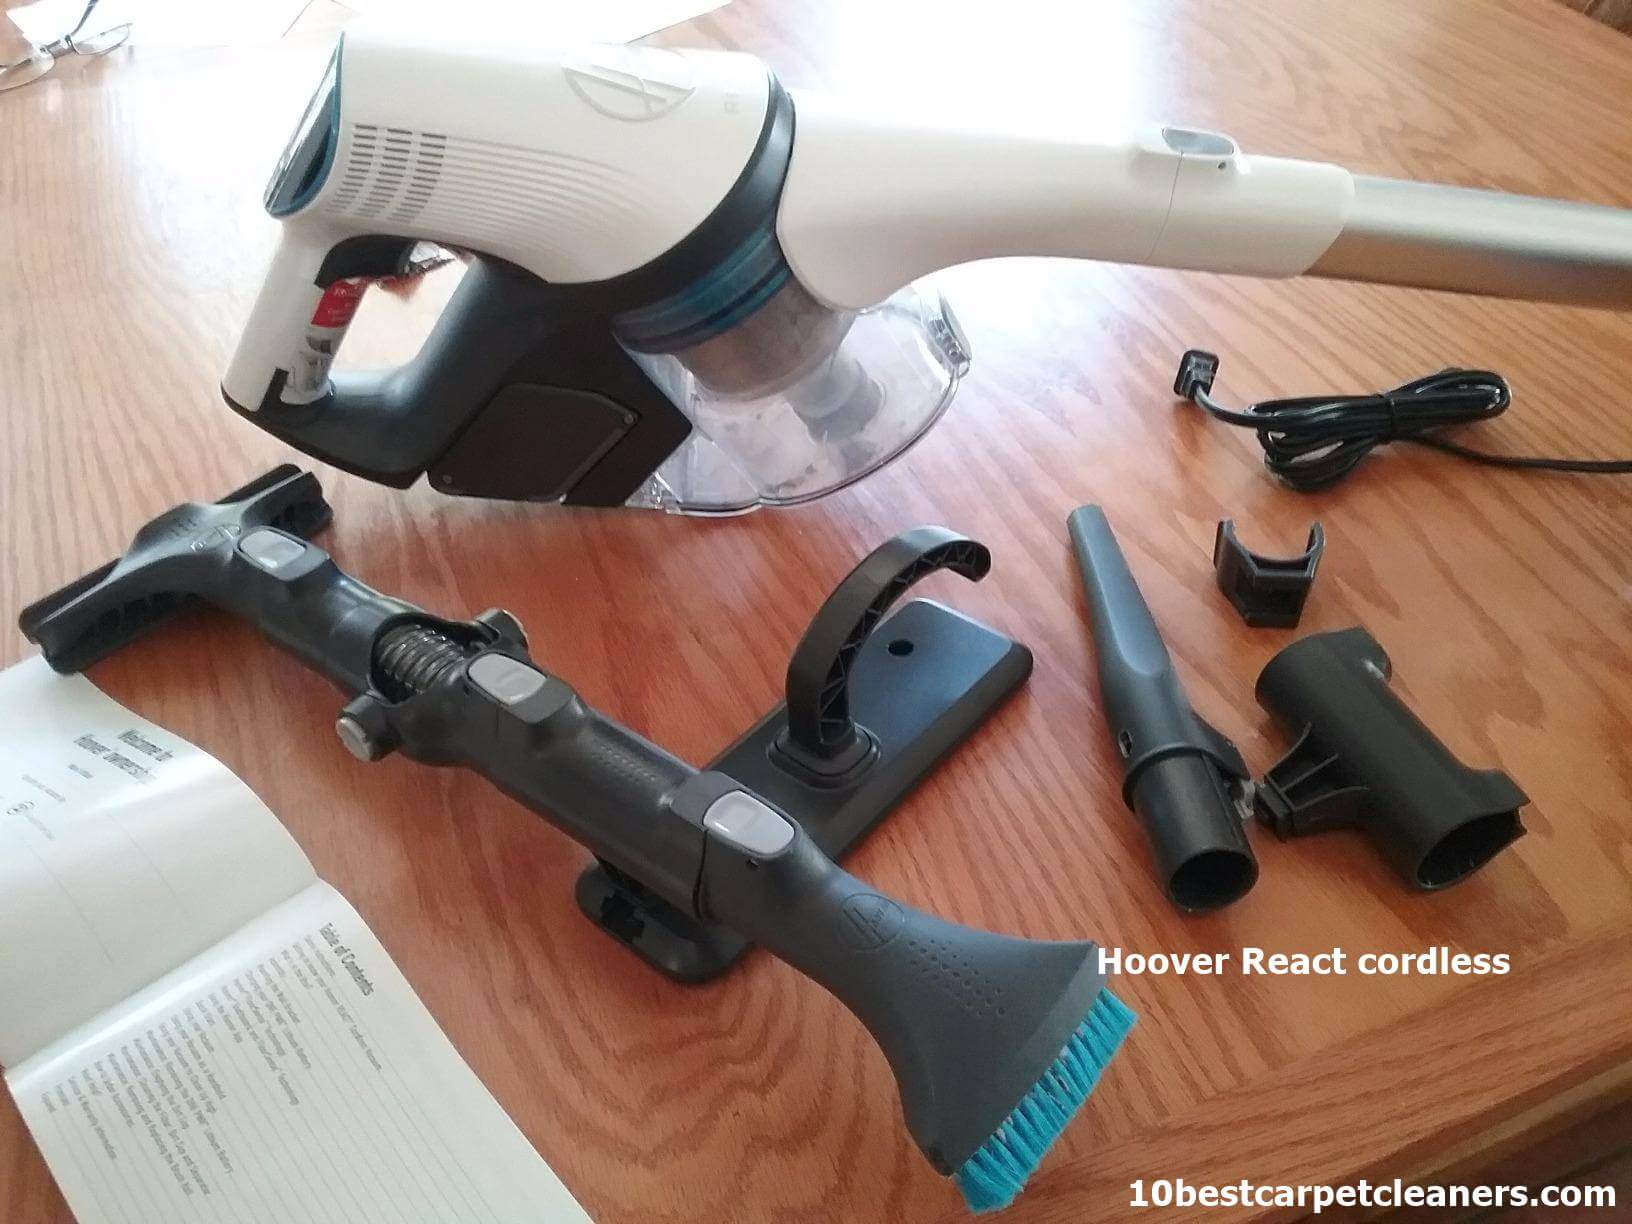 Hoover REACT Whole Home Cordless Stick Vacuum reviews